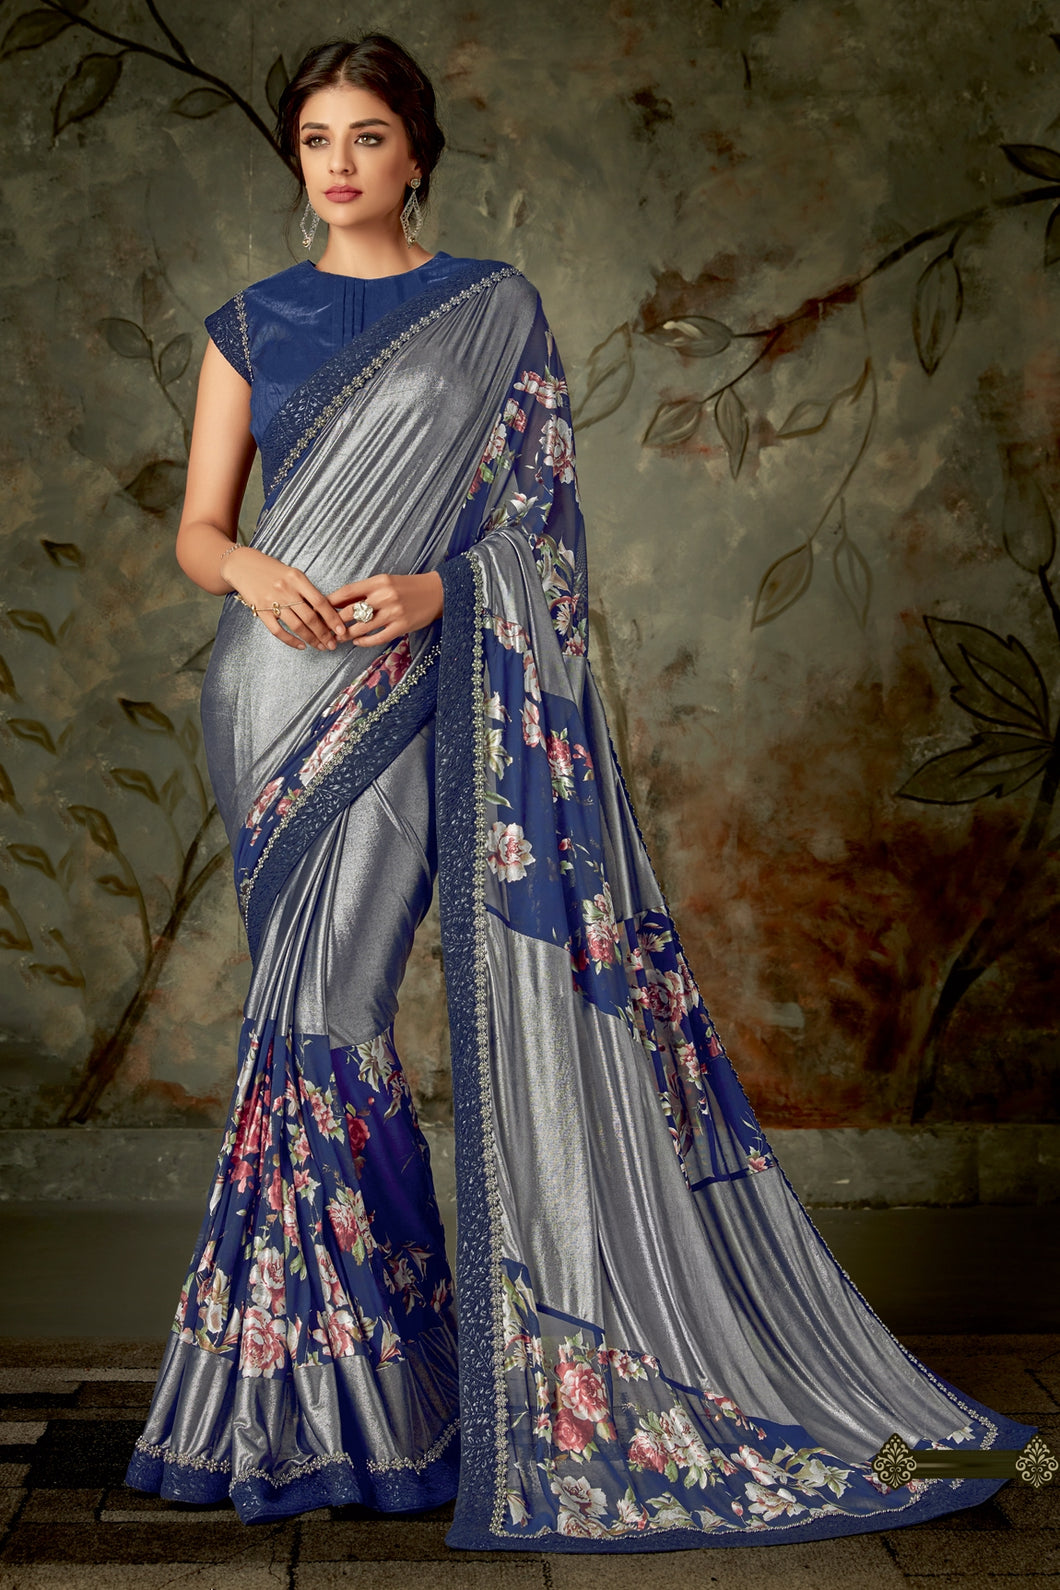 Bhelpuri Blue & Silver Lycra Designer Lace Border Saree with Blouse Piece